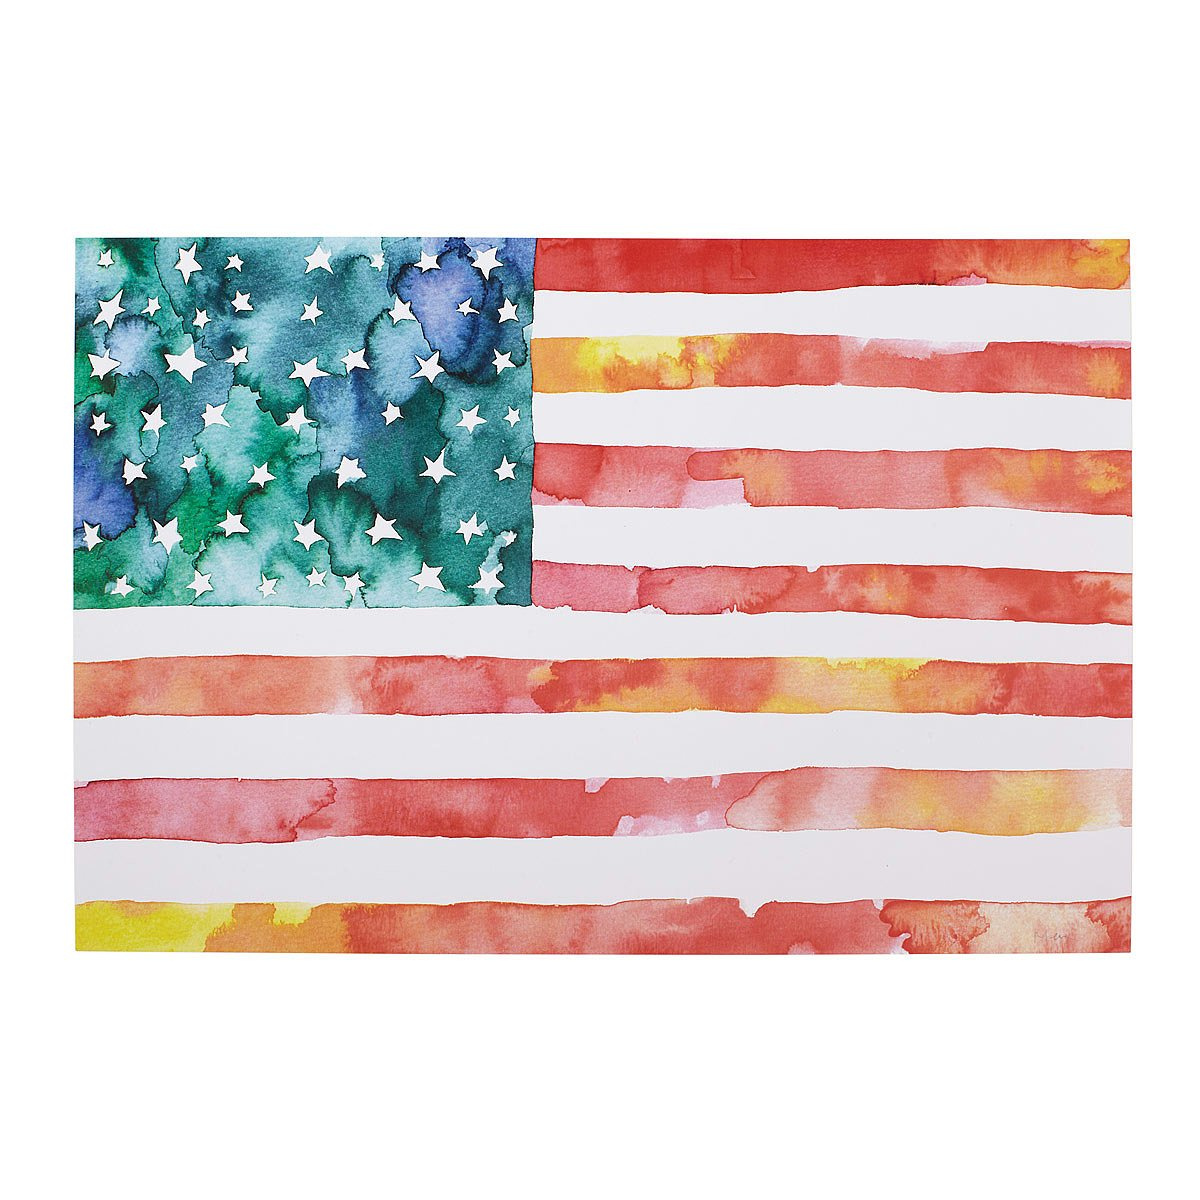 1200x1200 American Flag Watercolor American Flag Painting, Art Uncommongoods